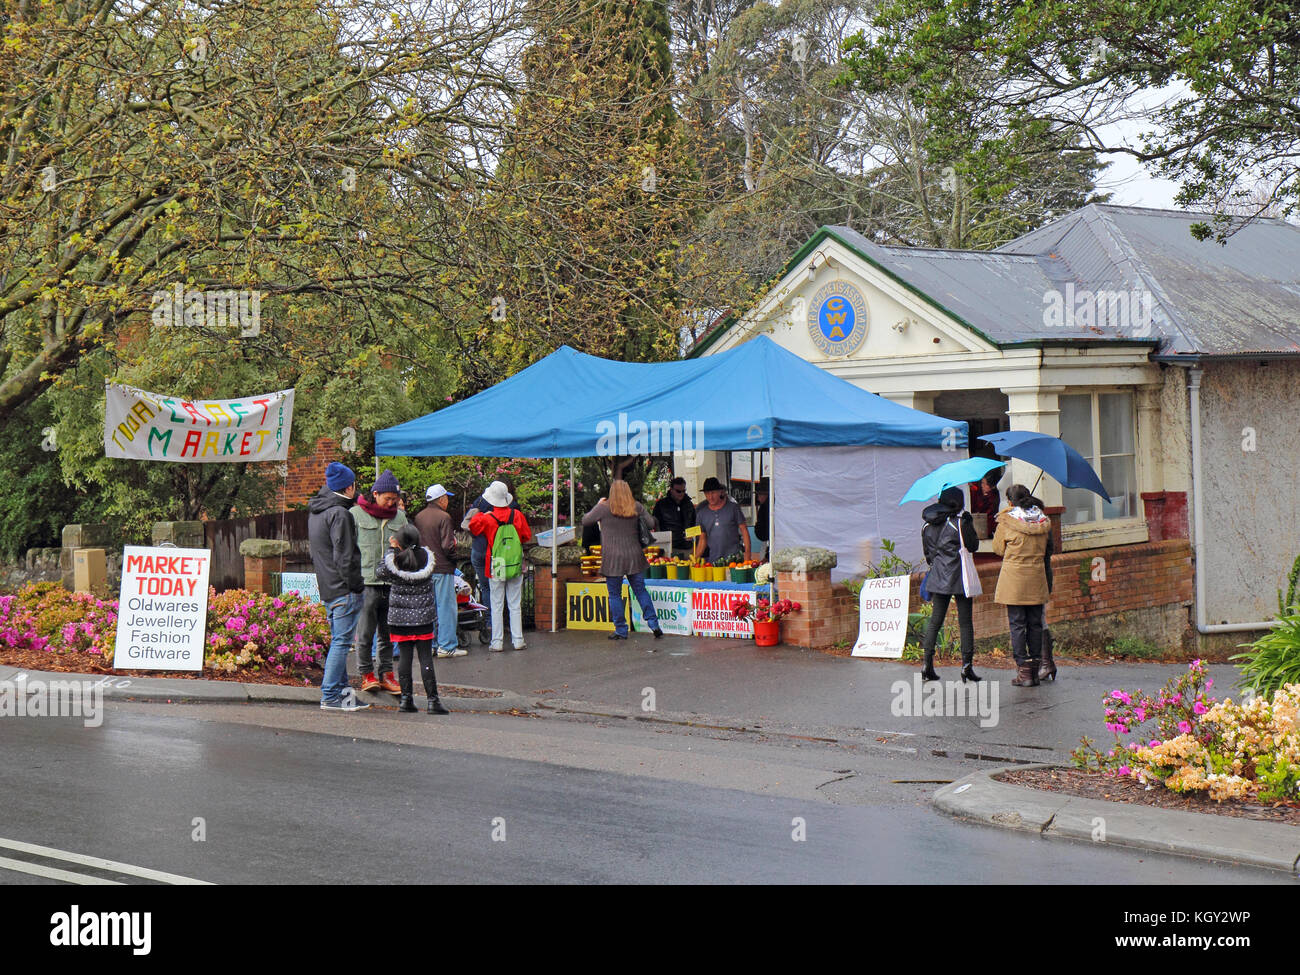 LEURA, AUSTRALIA - SEPTEMBER 25 2015: Shops and craft market on Leura Mall, the main thoroughfare through Leura, Stock Photo